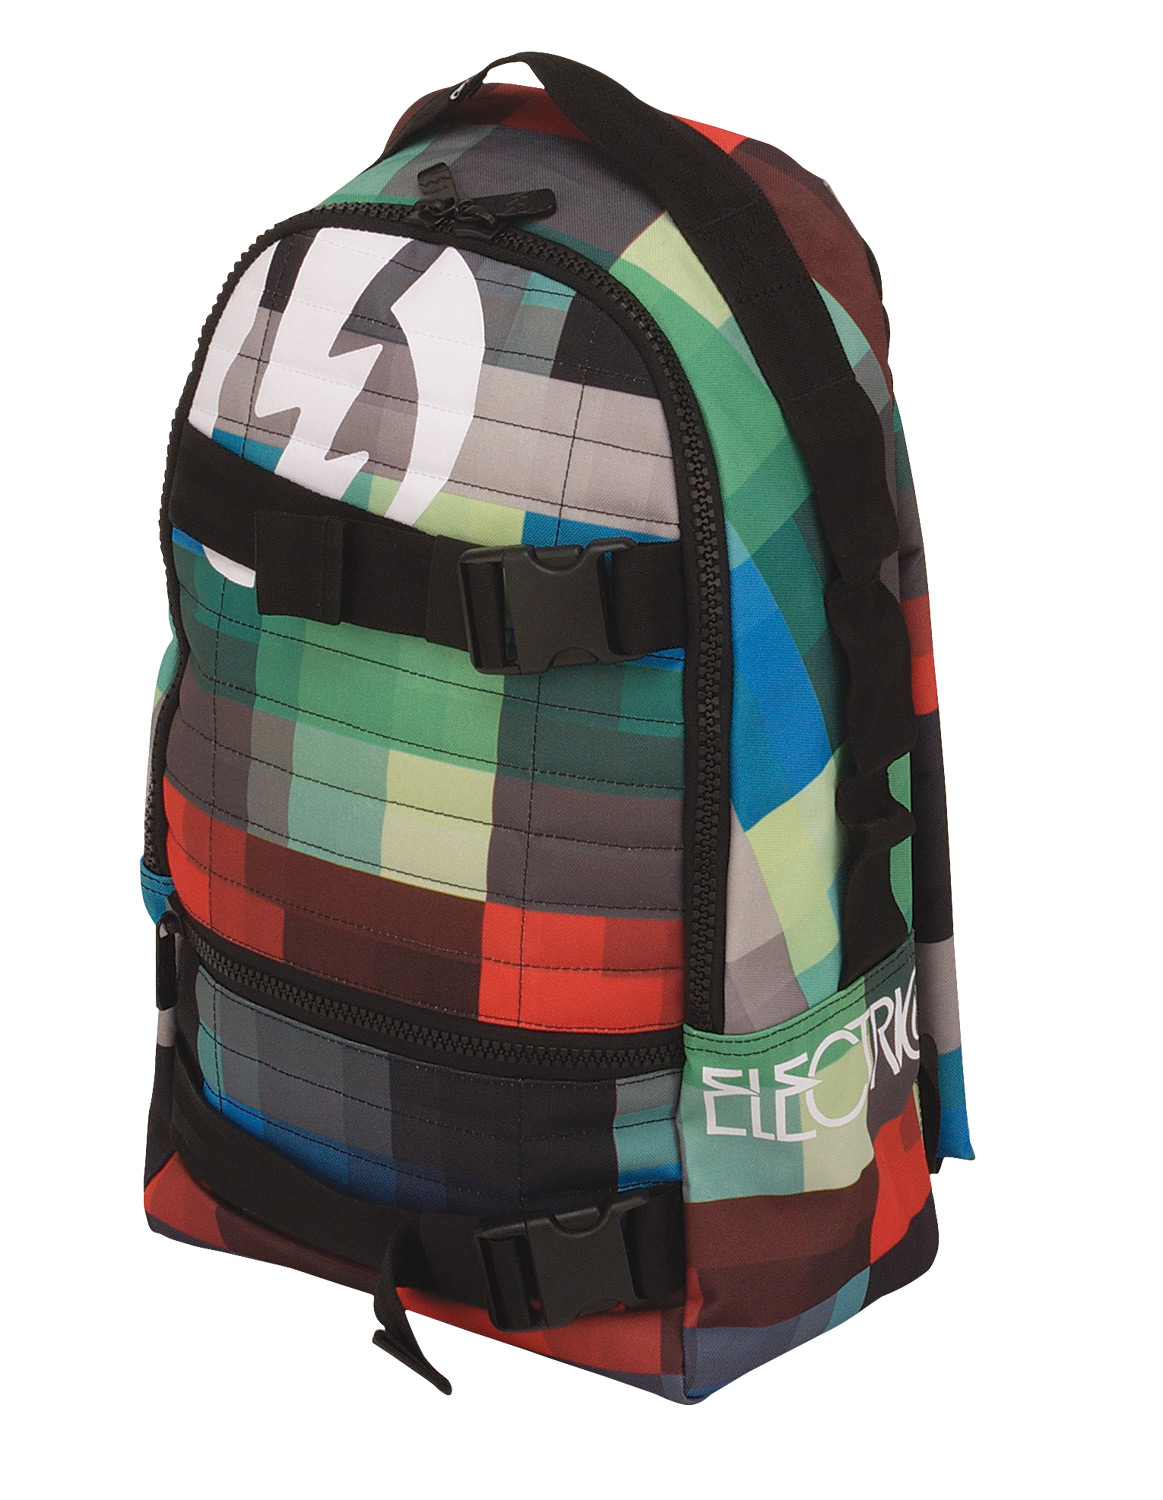 "Key Features of the Electric MK2 Backpack: SkatePack 1 Main Compartment With Interior Organizer Front Pocket Dimensions: 18"" X 11"" X 7"" - $25.95"